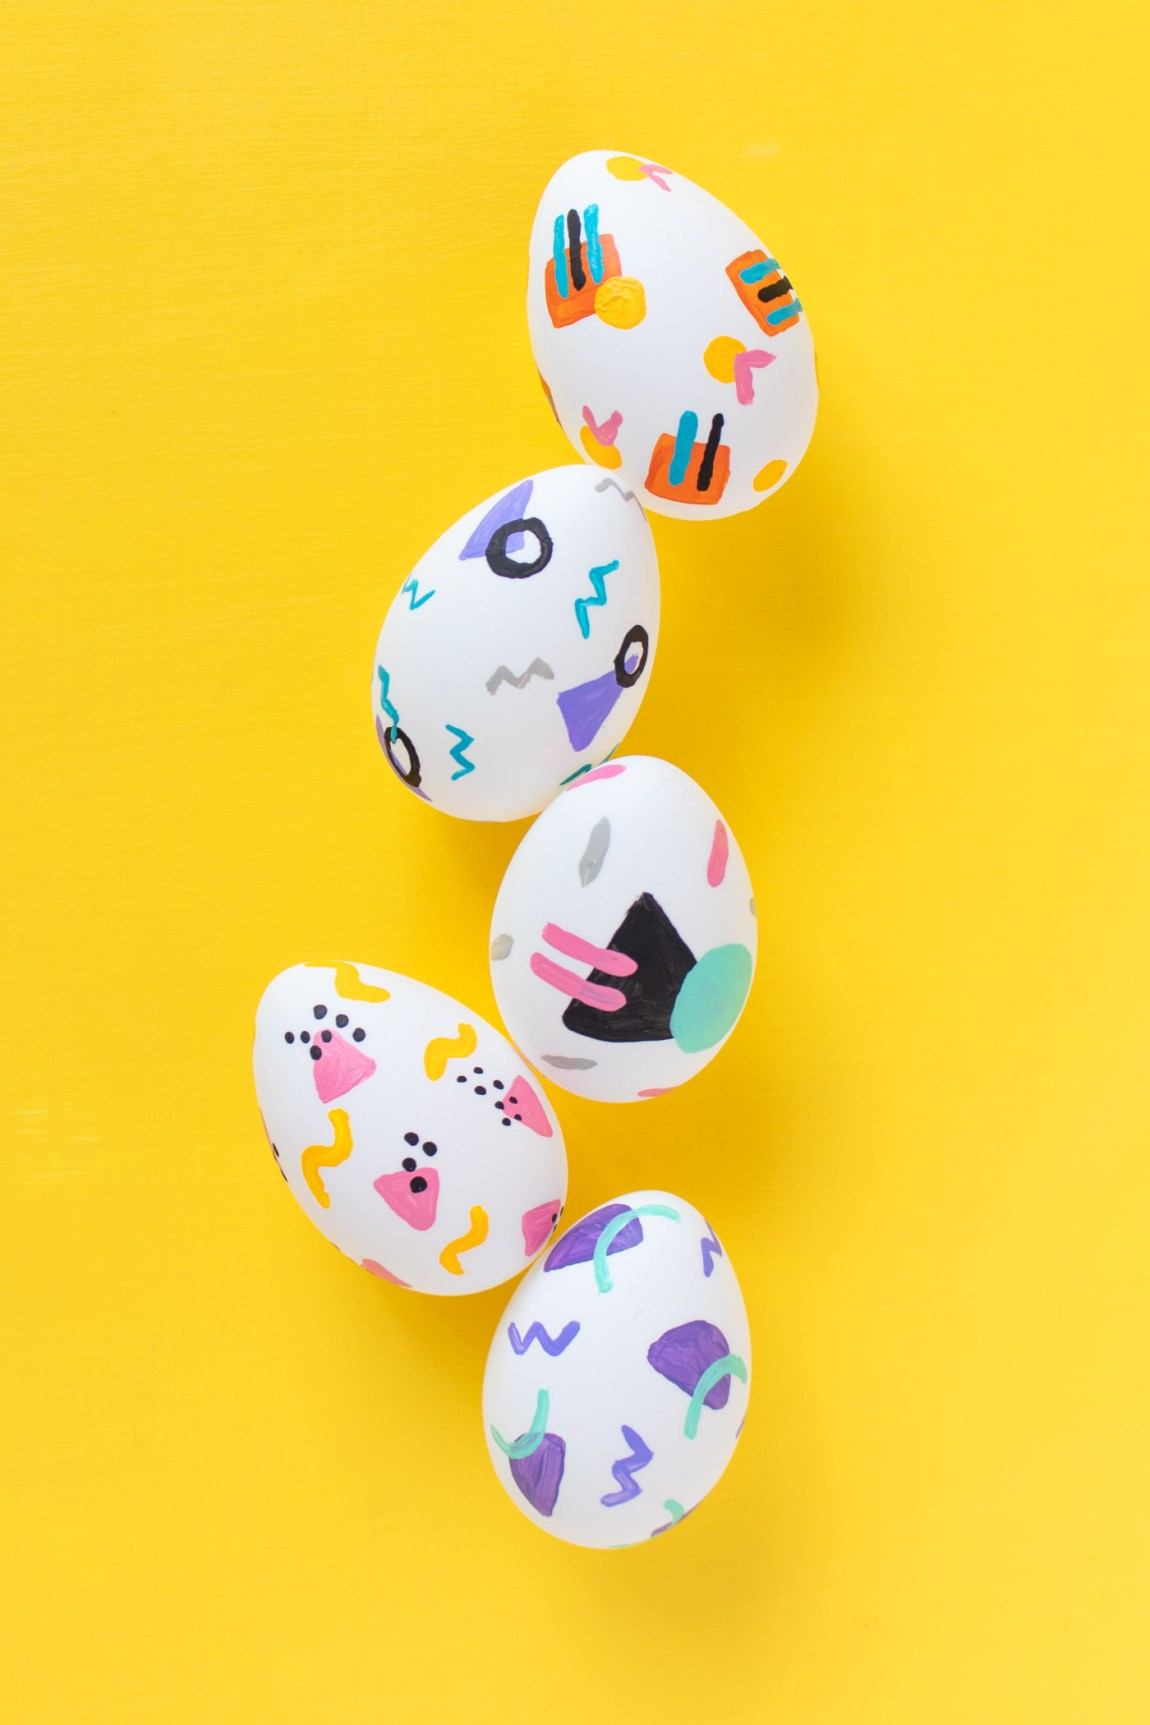 DIY 90s Patterned Easter Eggs | Club Crafted